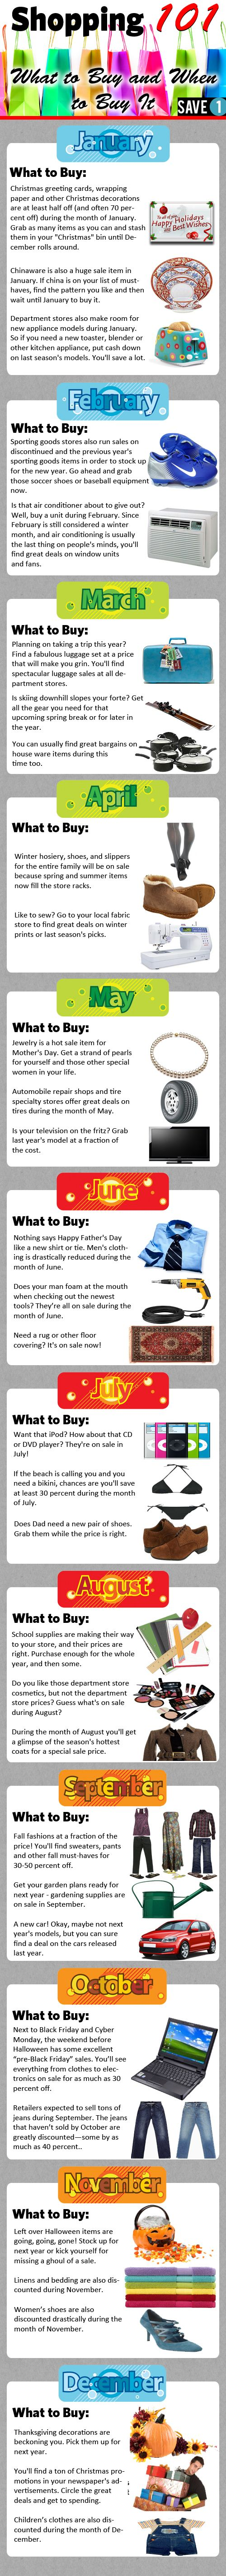 What to buy and when to buy it - month by month guide to save you money.  Will need to adjust to work for the Southern Hemisphere but still a great basis to start on :)